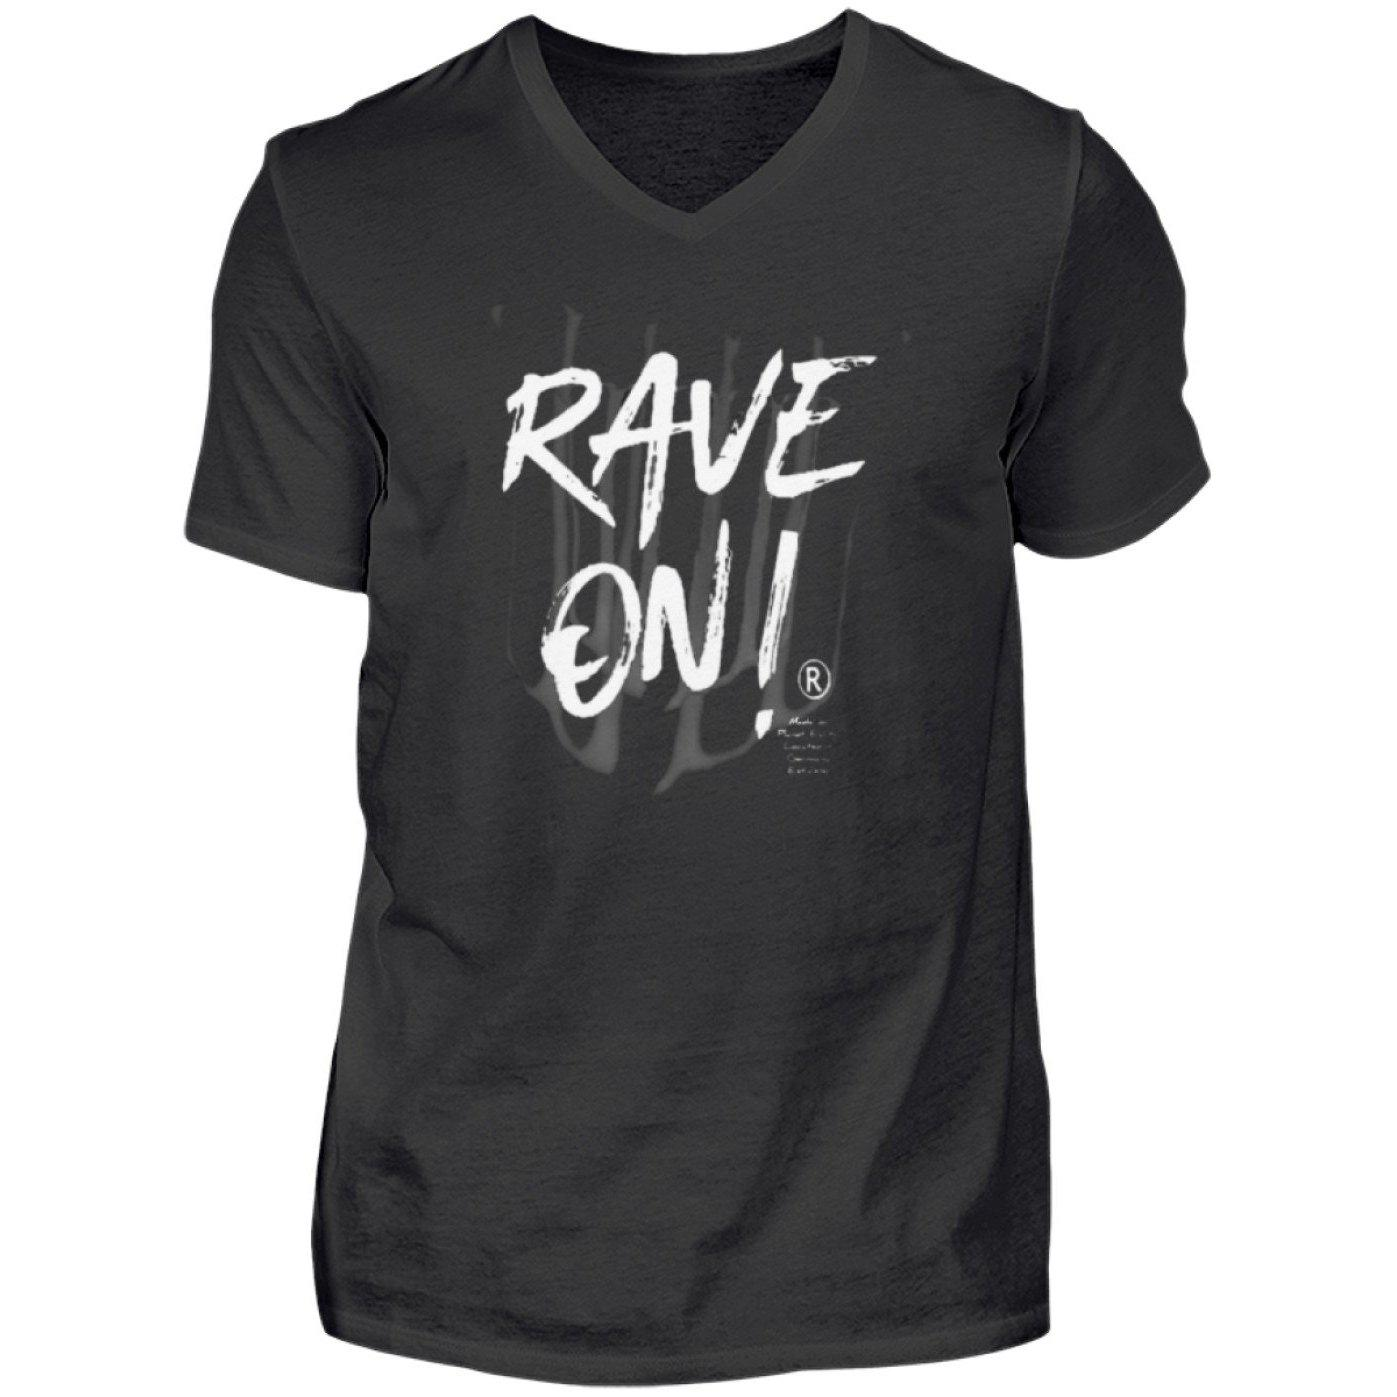 Rave On!® - Made On Planet Earth B2k20 - Herren V-Neck Shirt V-Neck Herrenshirt Black / S - Rave On!® der Club & Techno Szene Shop für Coole Junge Mode Streetwear Style & Fashion Outfits + Sexy Festival 420 Stuff